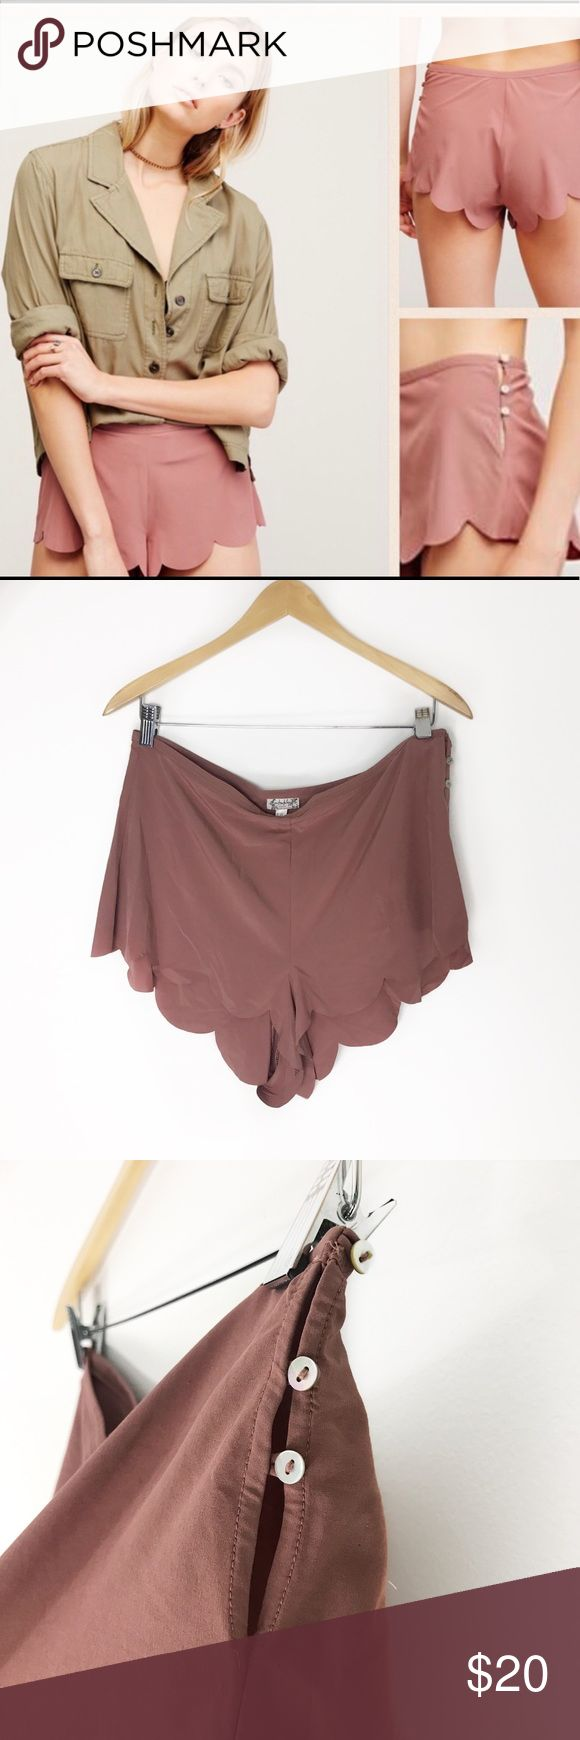 Free people dusty rose scalloped shorts New! Doesn't really have retail tags (online order) but has the button and extra thread attached. Size medium scalloped edge booty shorts from intimately Free People. No trades or holds. Free People Shorts